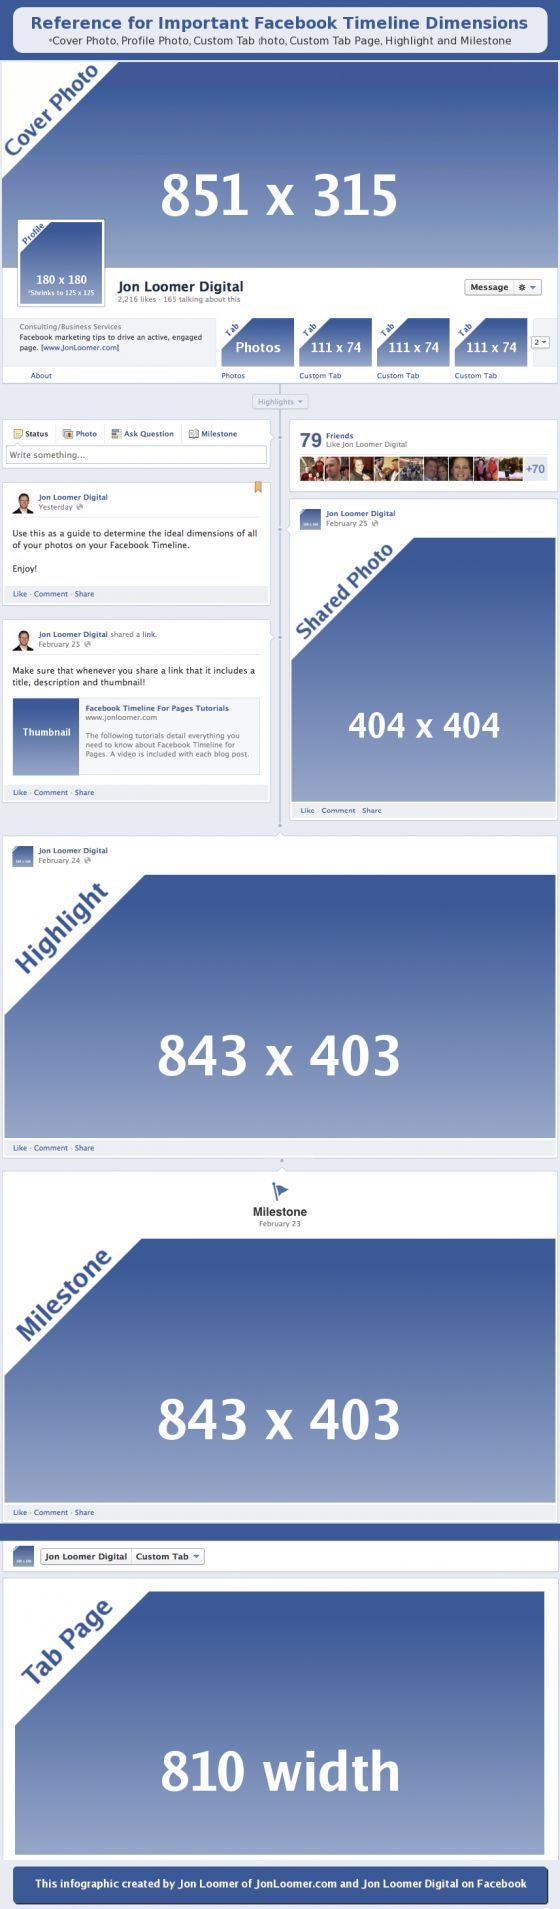 This would have come in handy for me today! Facebook Timeline for Business Pages Dimensions Made Easy